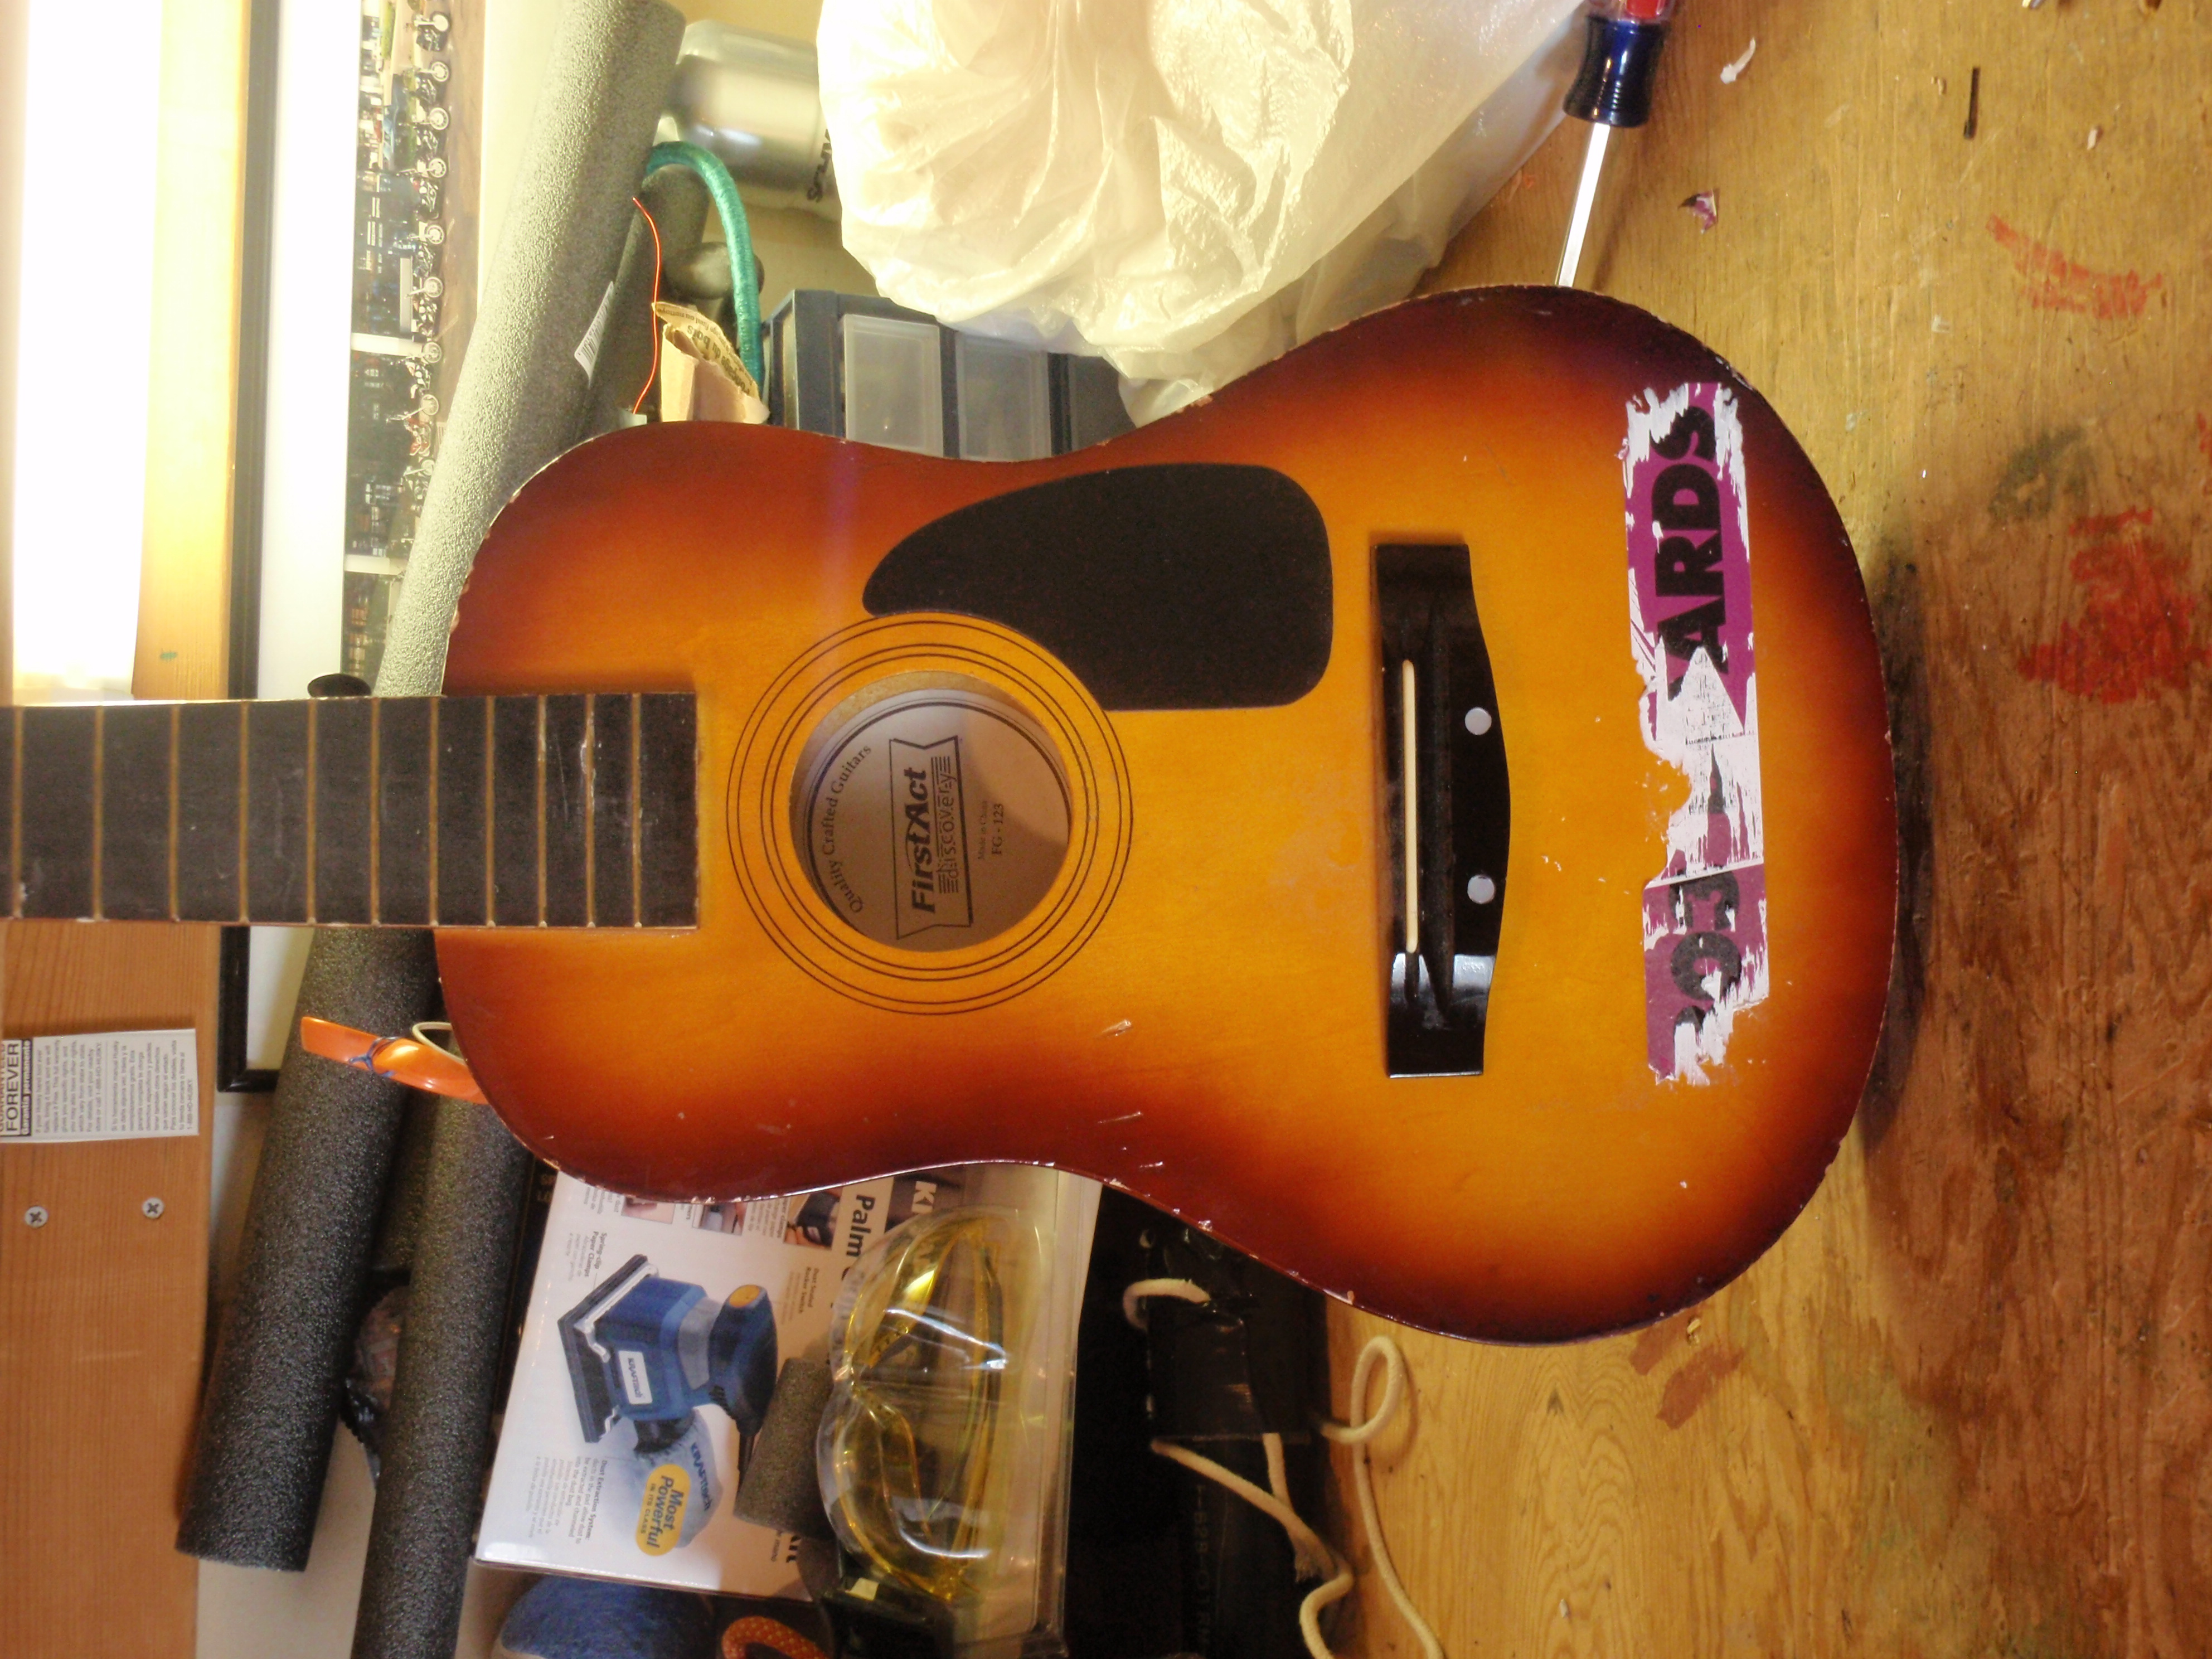 Picture of The Guitar Itself